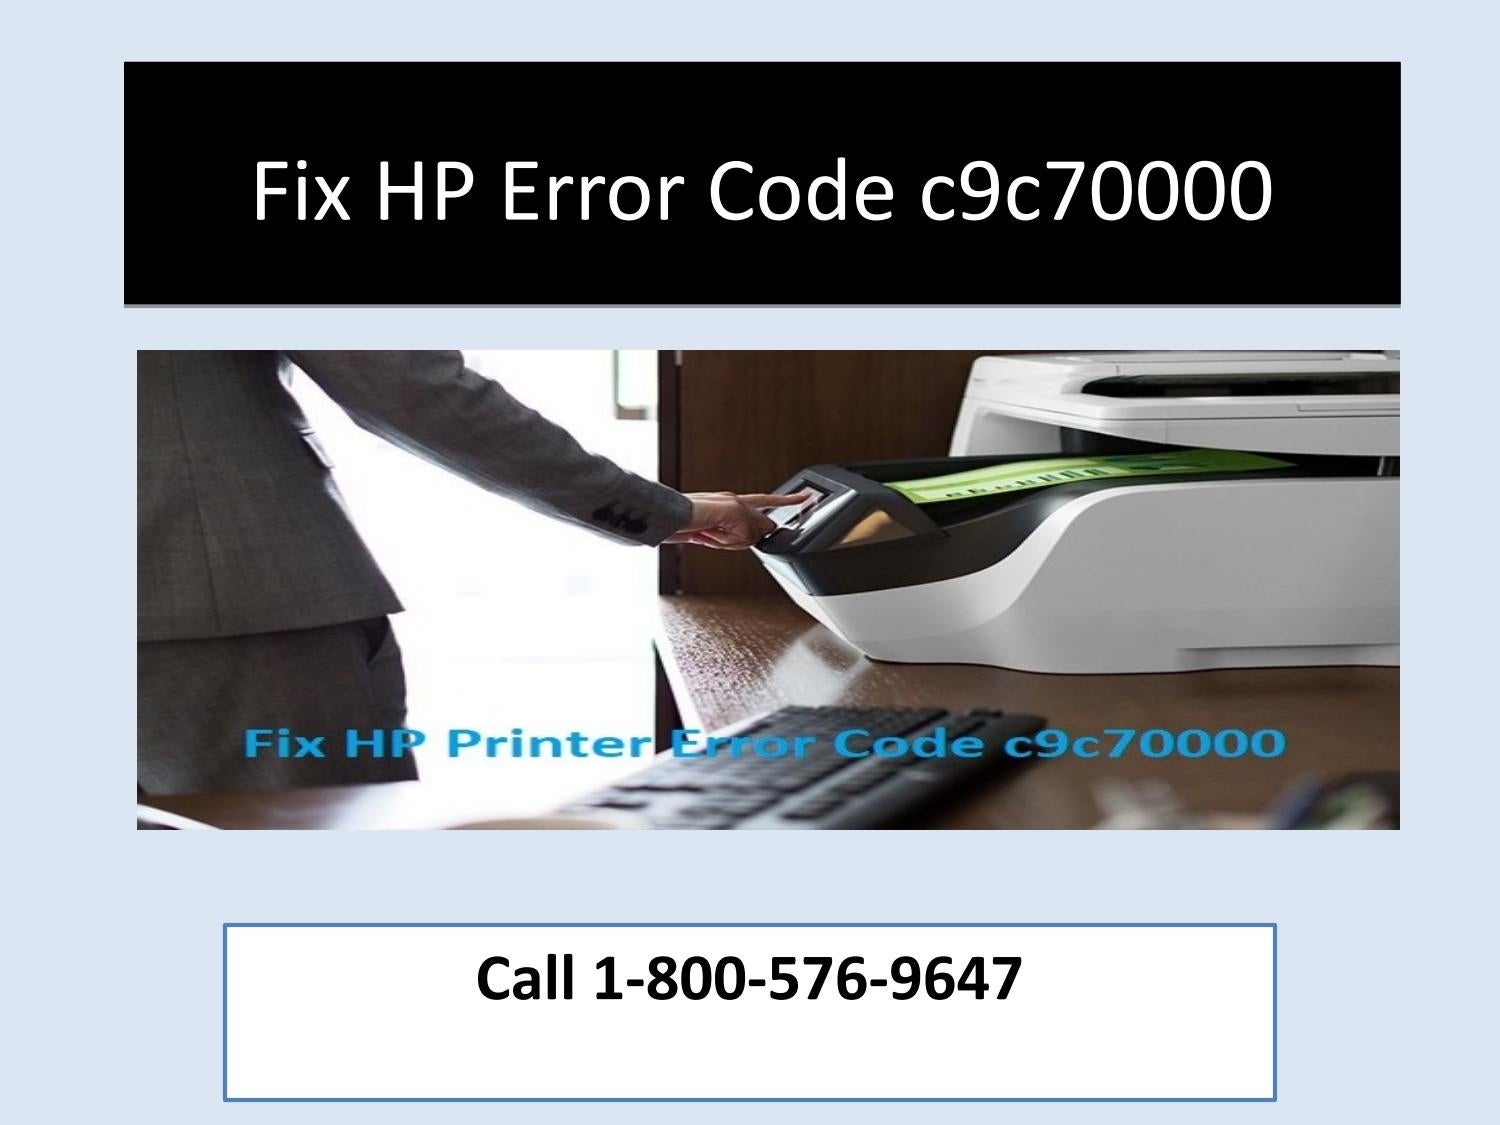 How to Resolve HP Error Code c9c70000 or Call 1-800-576-9647